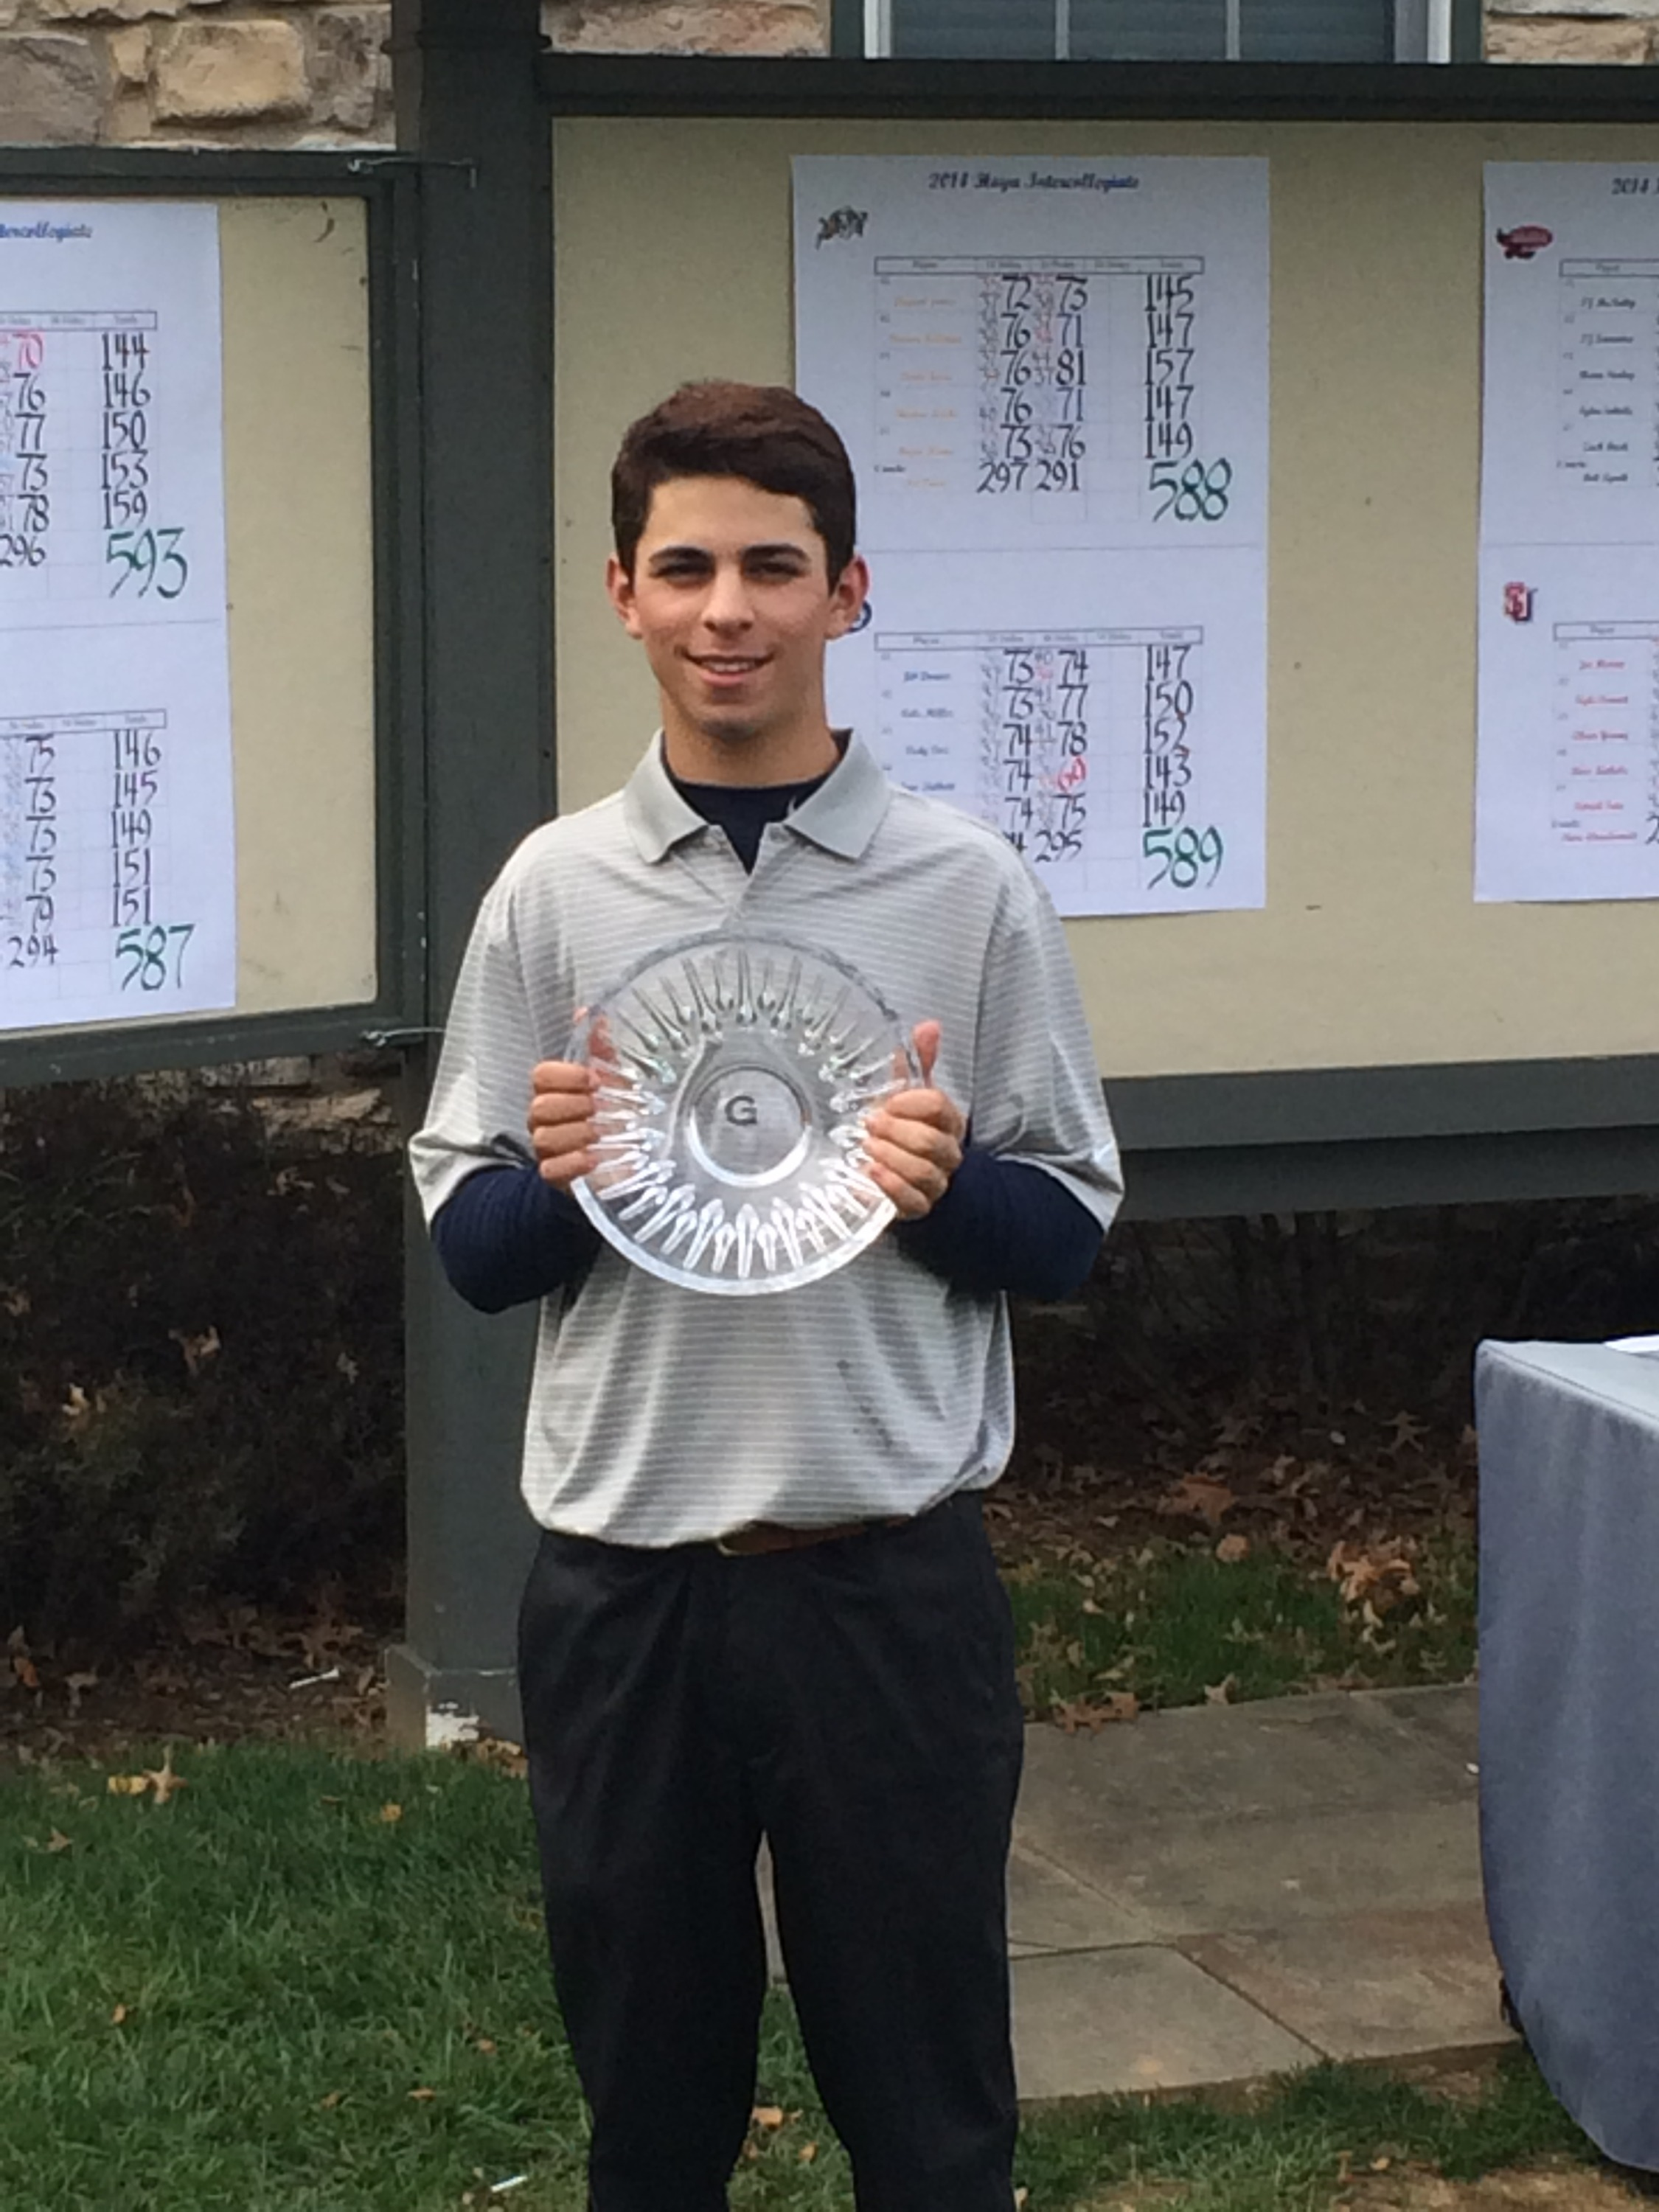 Cole Berman claimed his second individual title of the fall at the Georgetown Intercollegiate